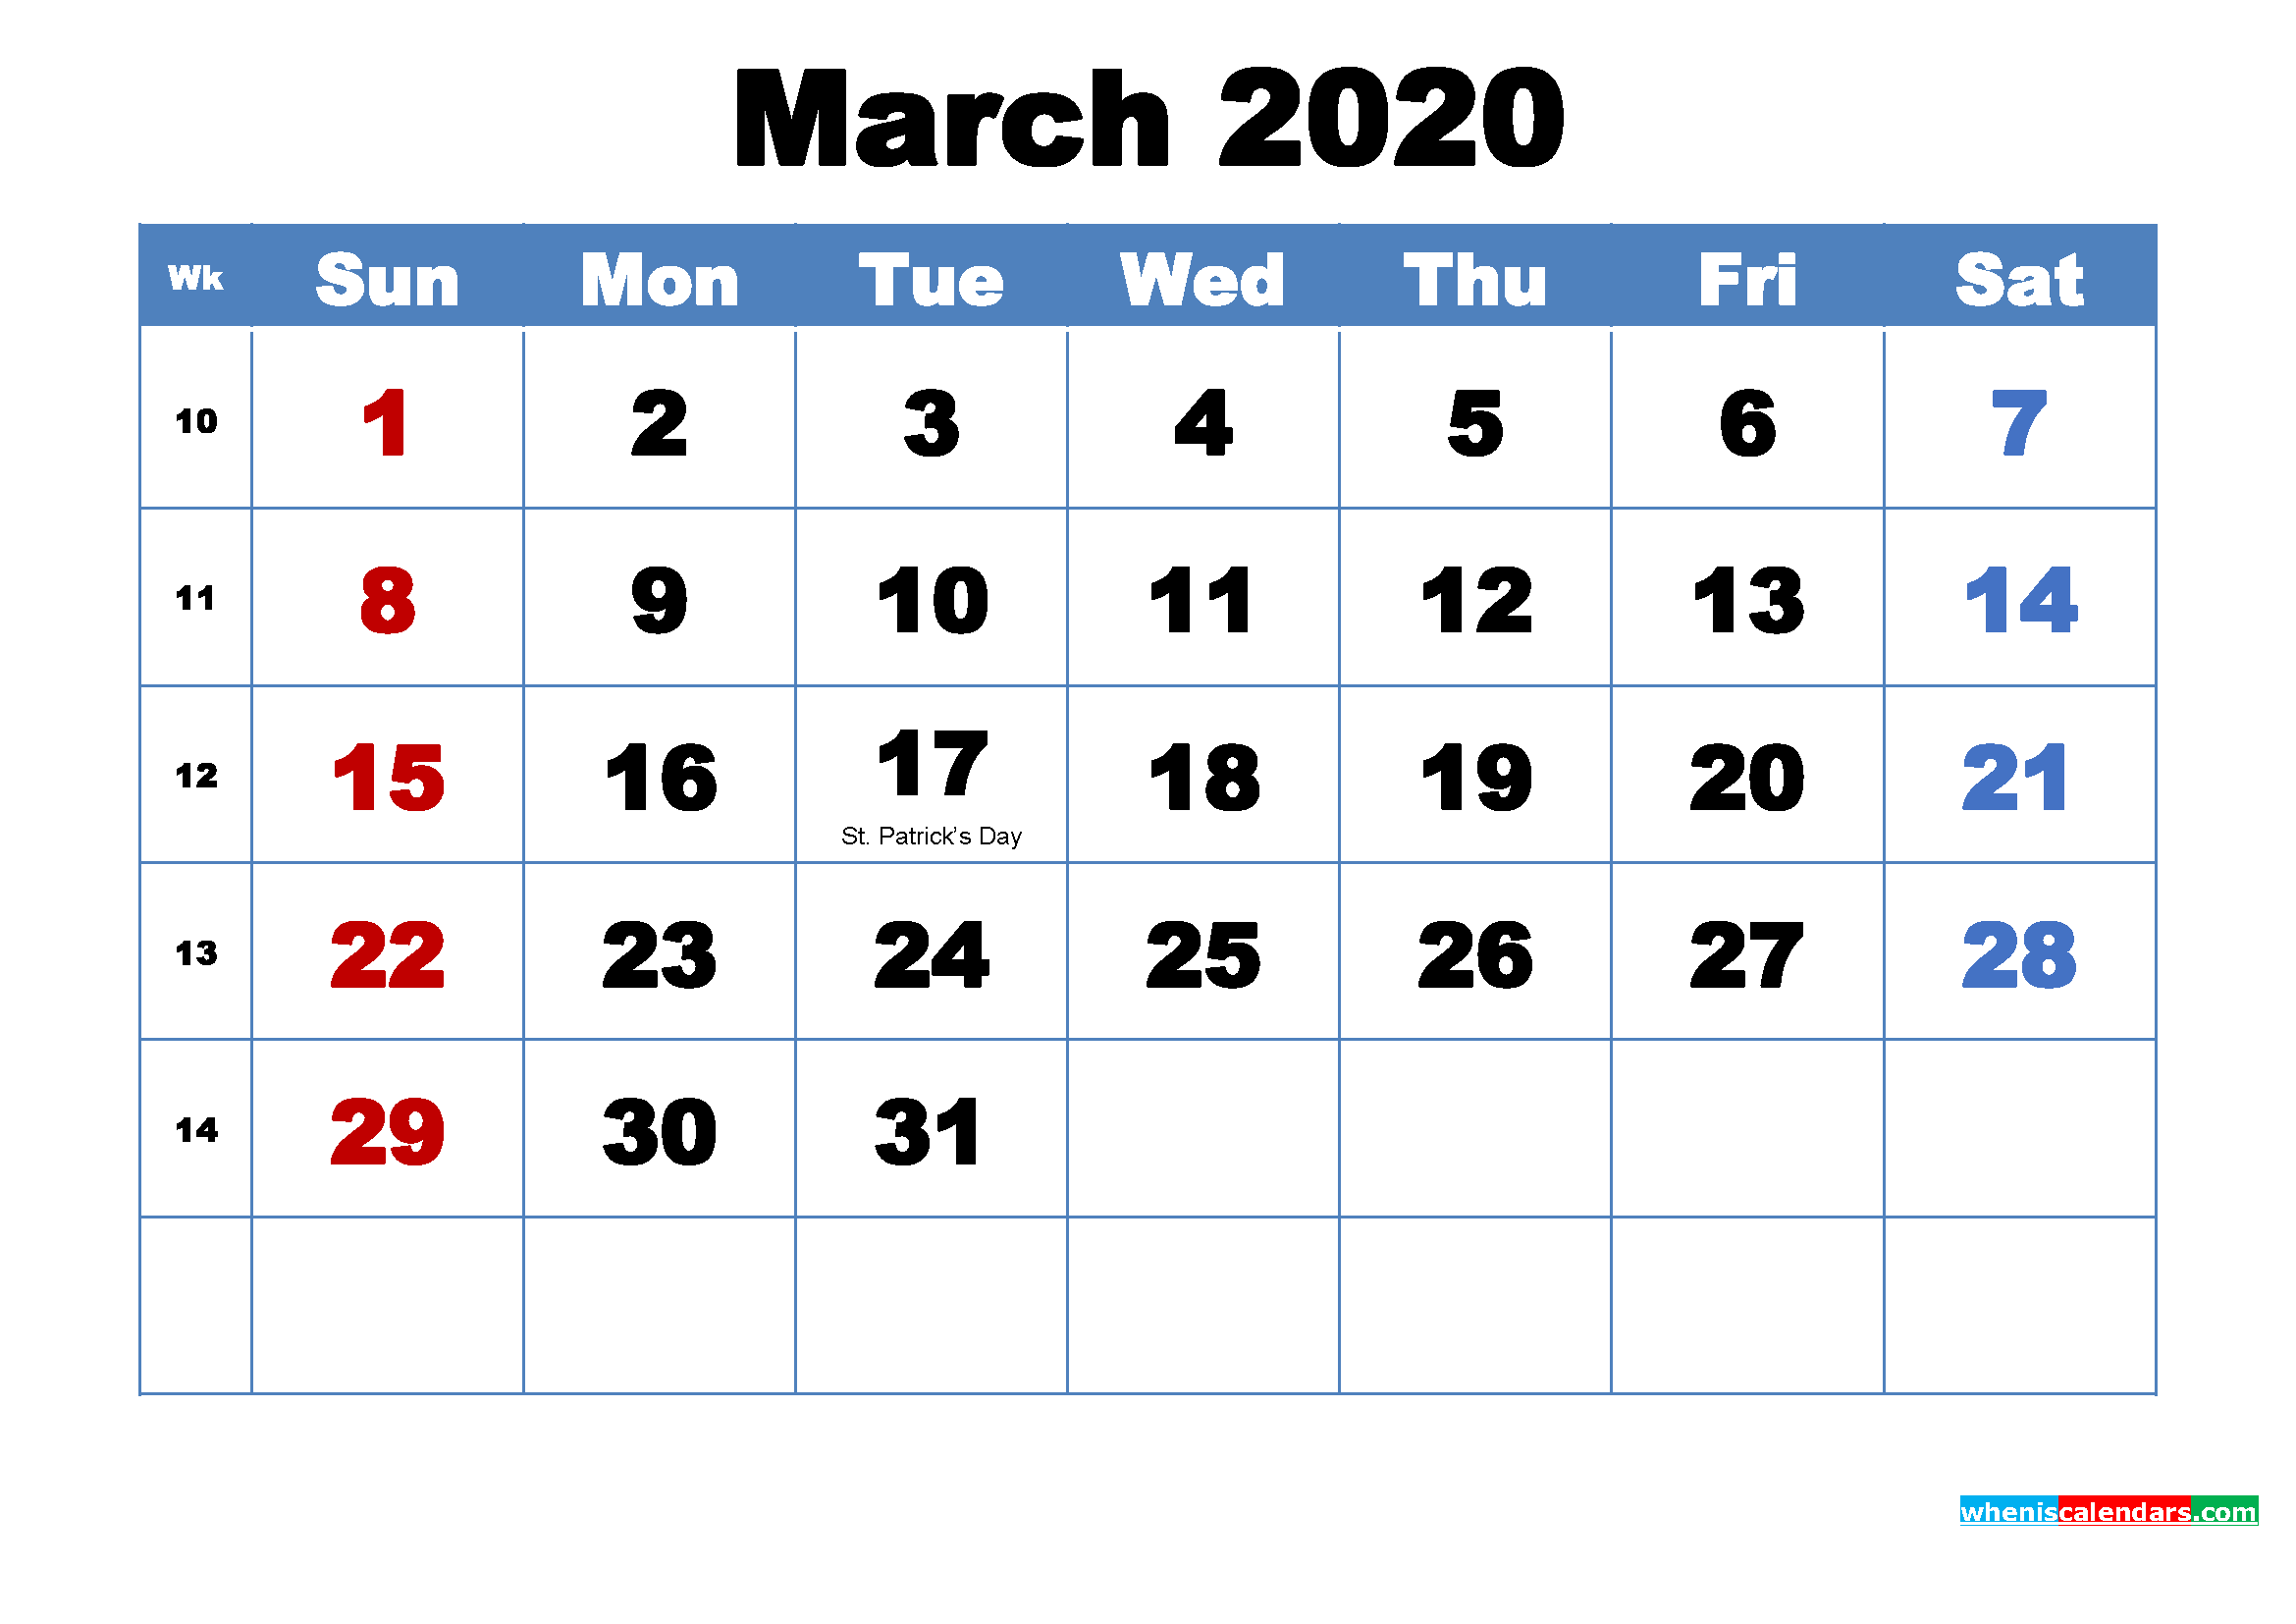 Printable 2020 Calendar by Month March